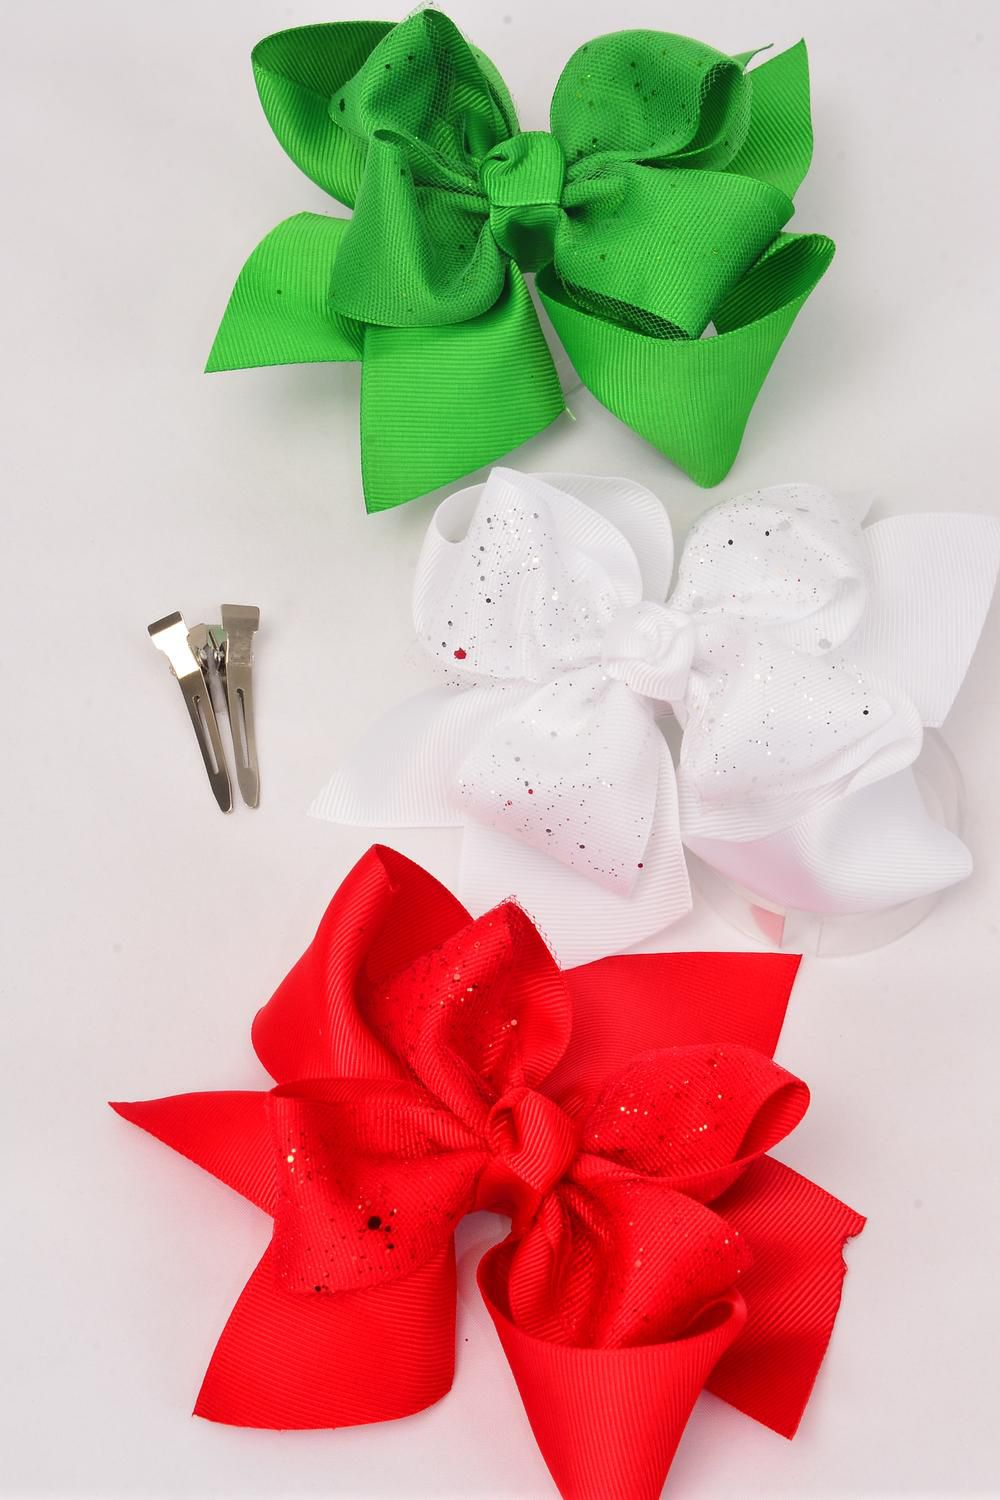 "Hair Bow Jumbo XMAS Double Layer Bow Metallic Red White Green Mix Grosgrain Bowtie/DZ **Alligator Clip** Size-6""x 6"",4 Red,4 White,4 Green,3 Color Asst,Clip Strip & UPC Code."